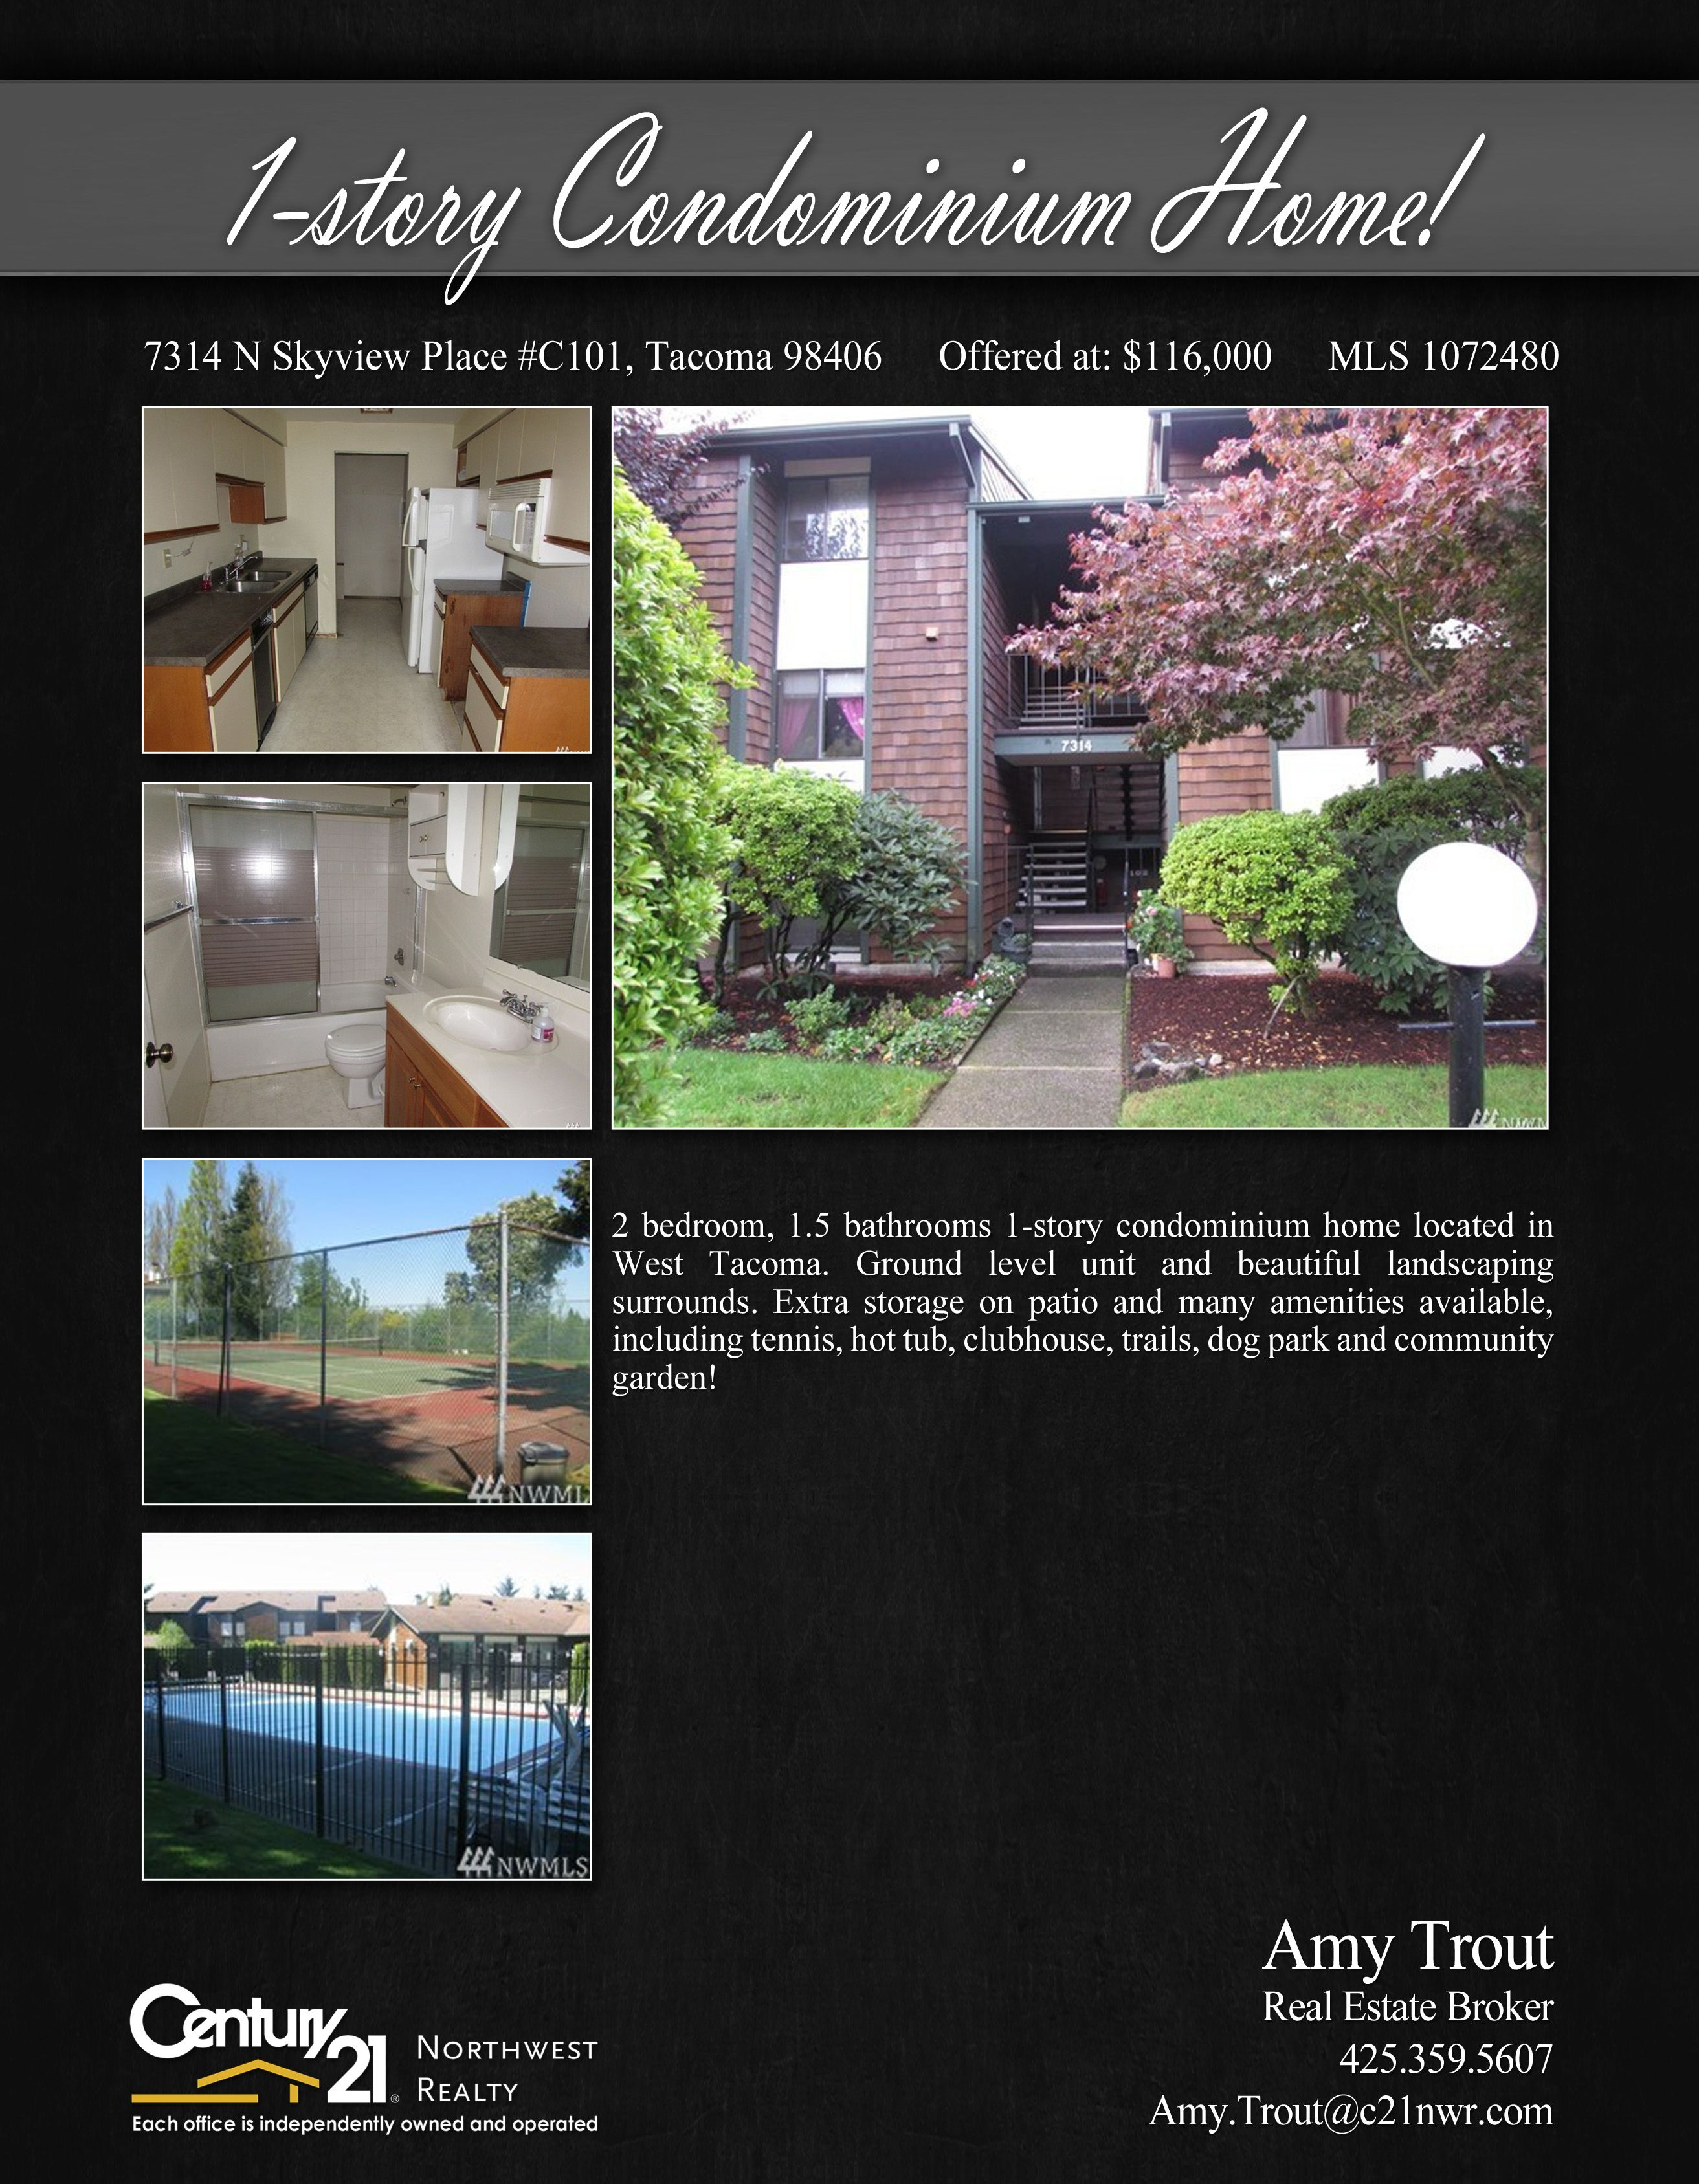 Check out this beautiful property in Tacoma with price reduced to